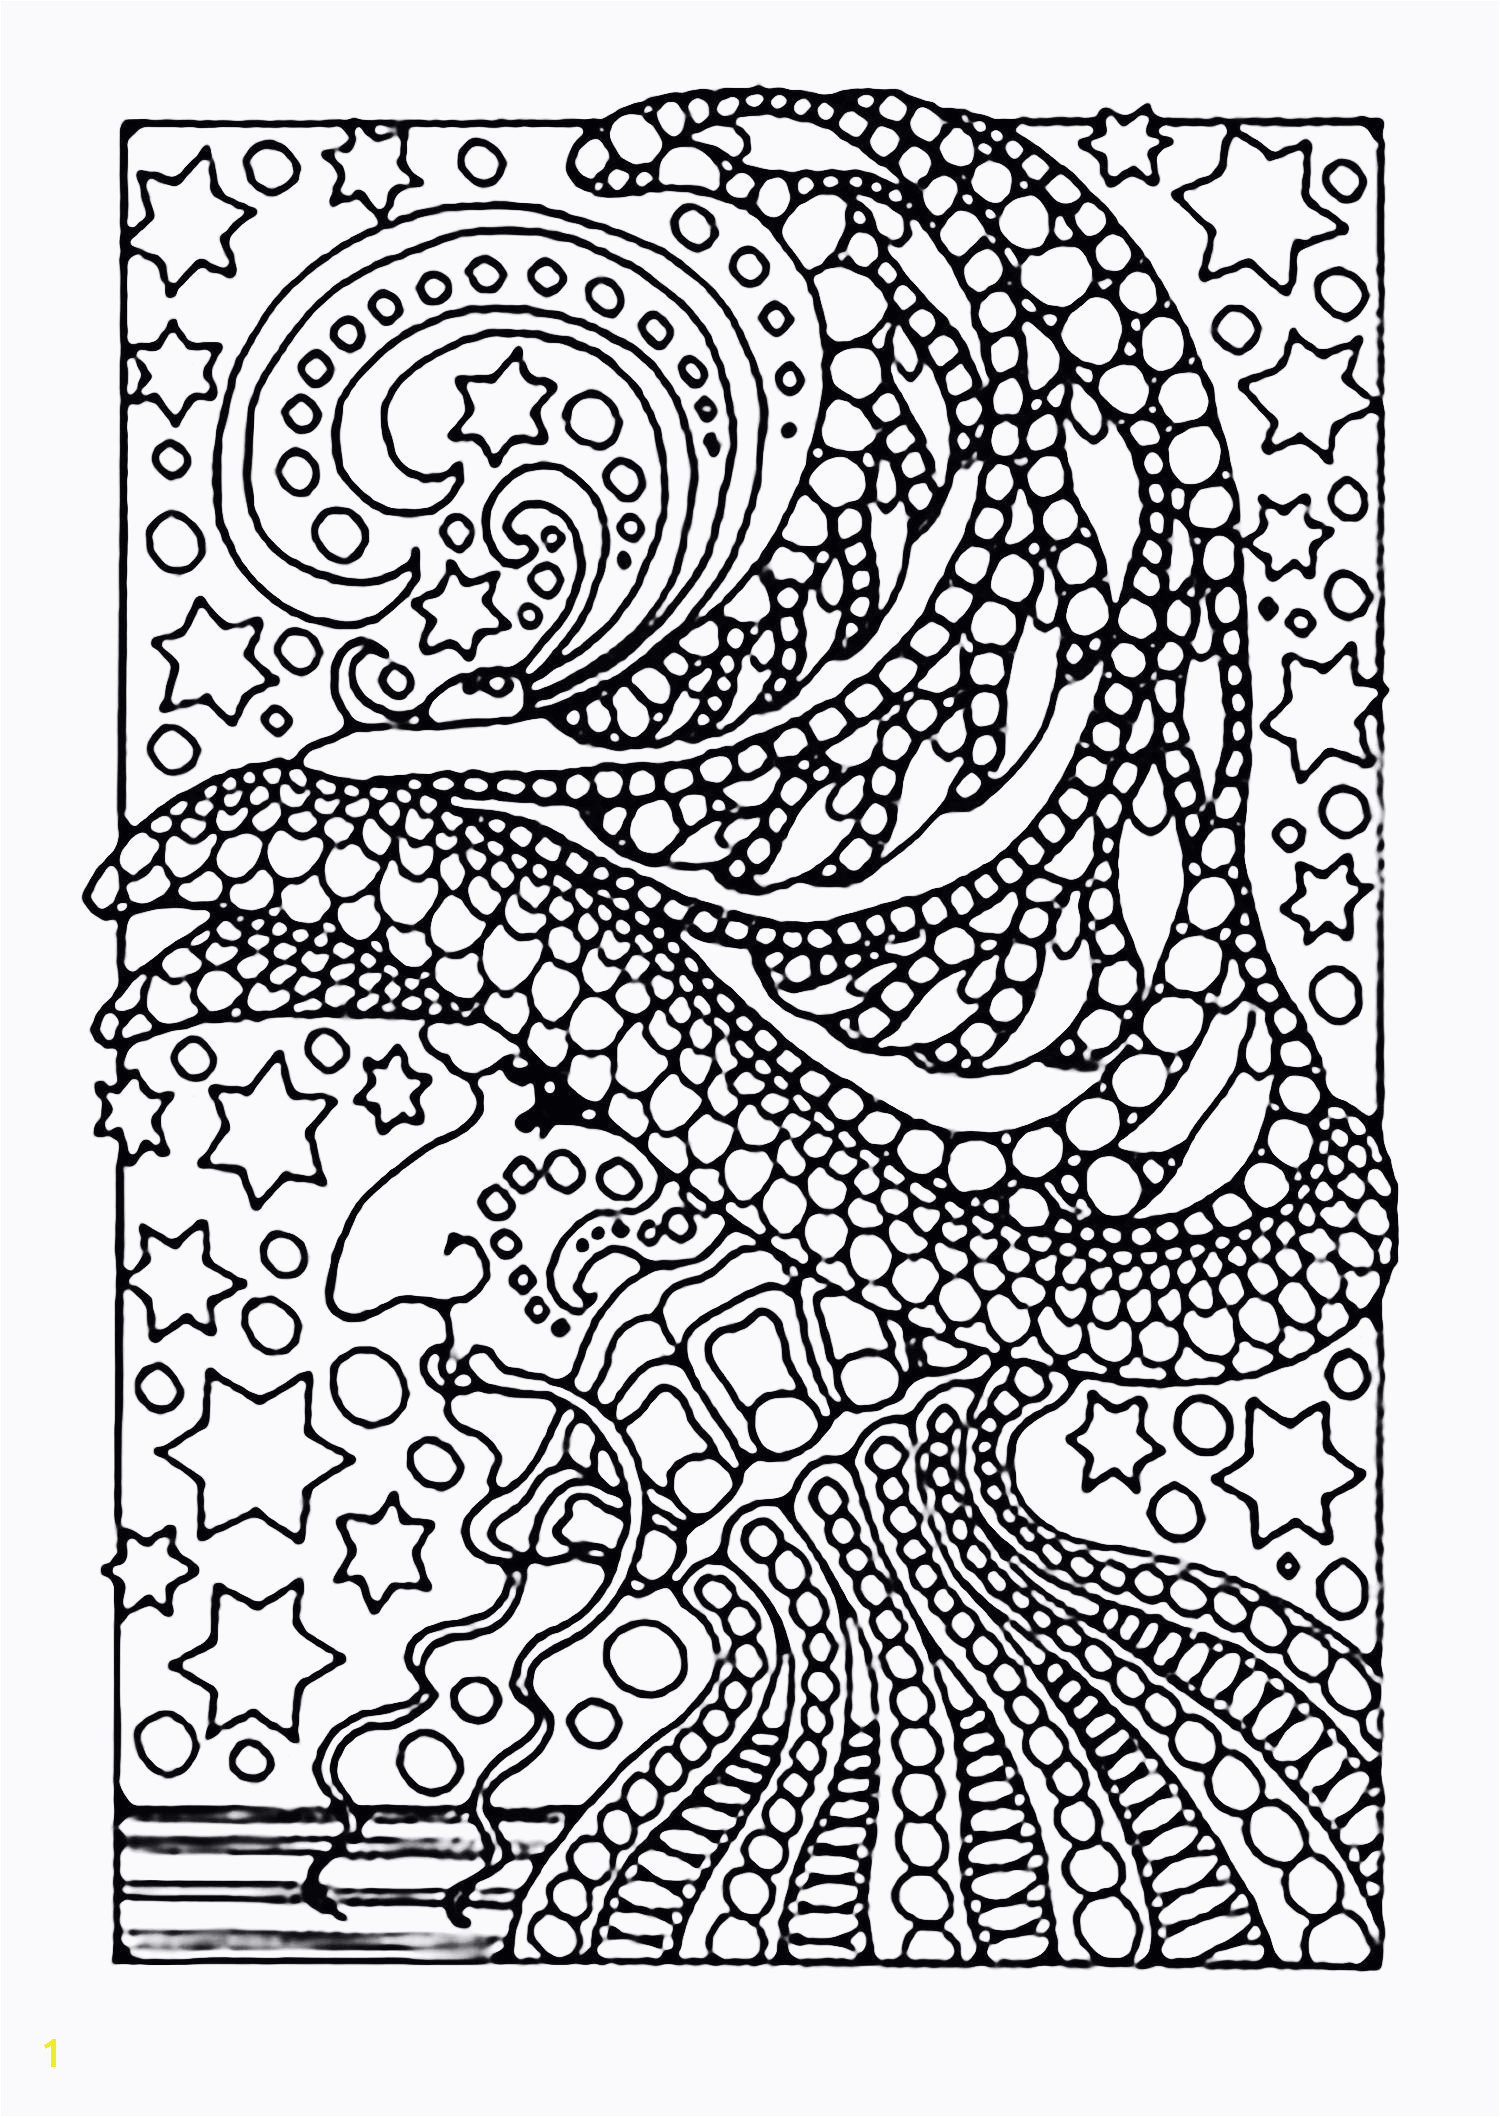 Pokemon Coloring Pages Printable Free Free Coloring Pages for Kids Pokemon Calendar Printable Free